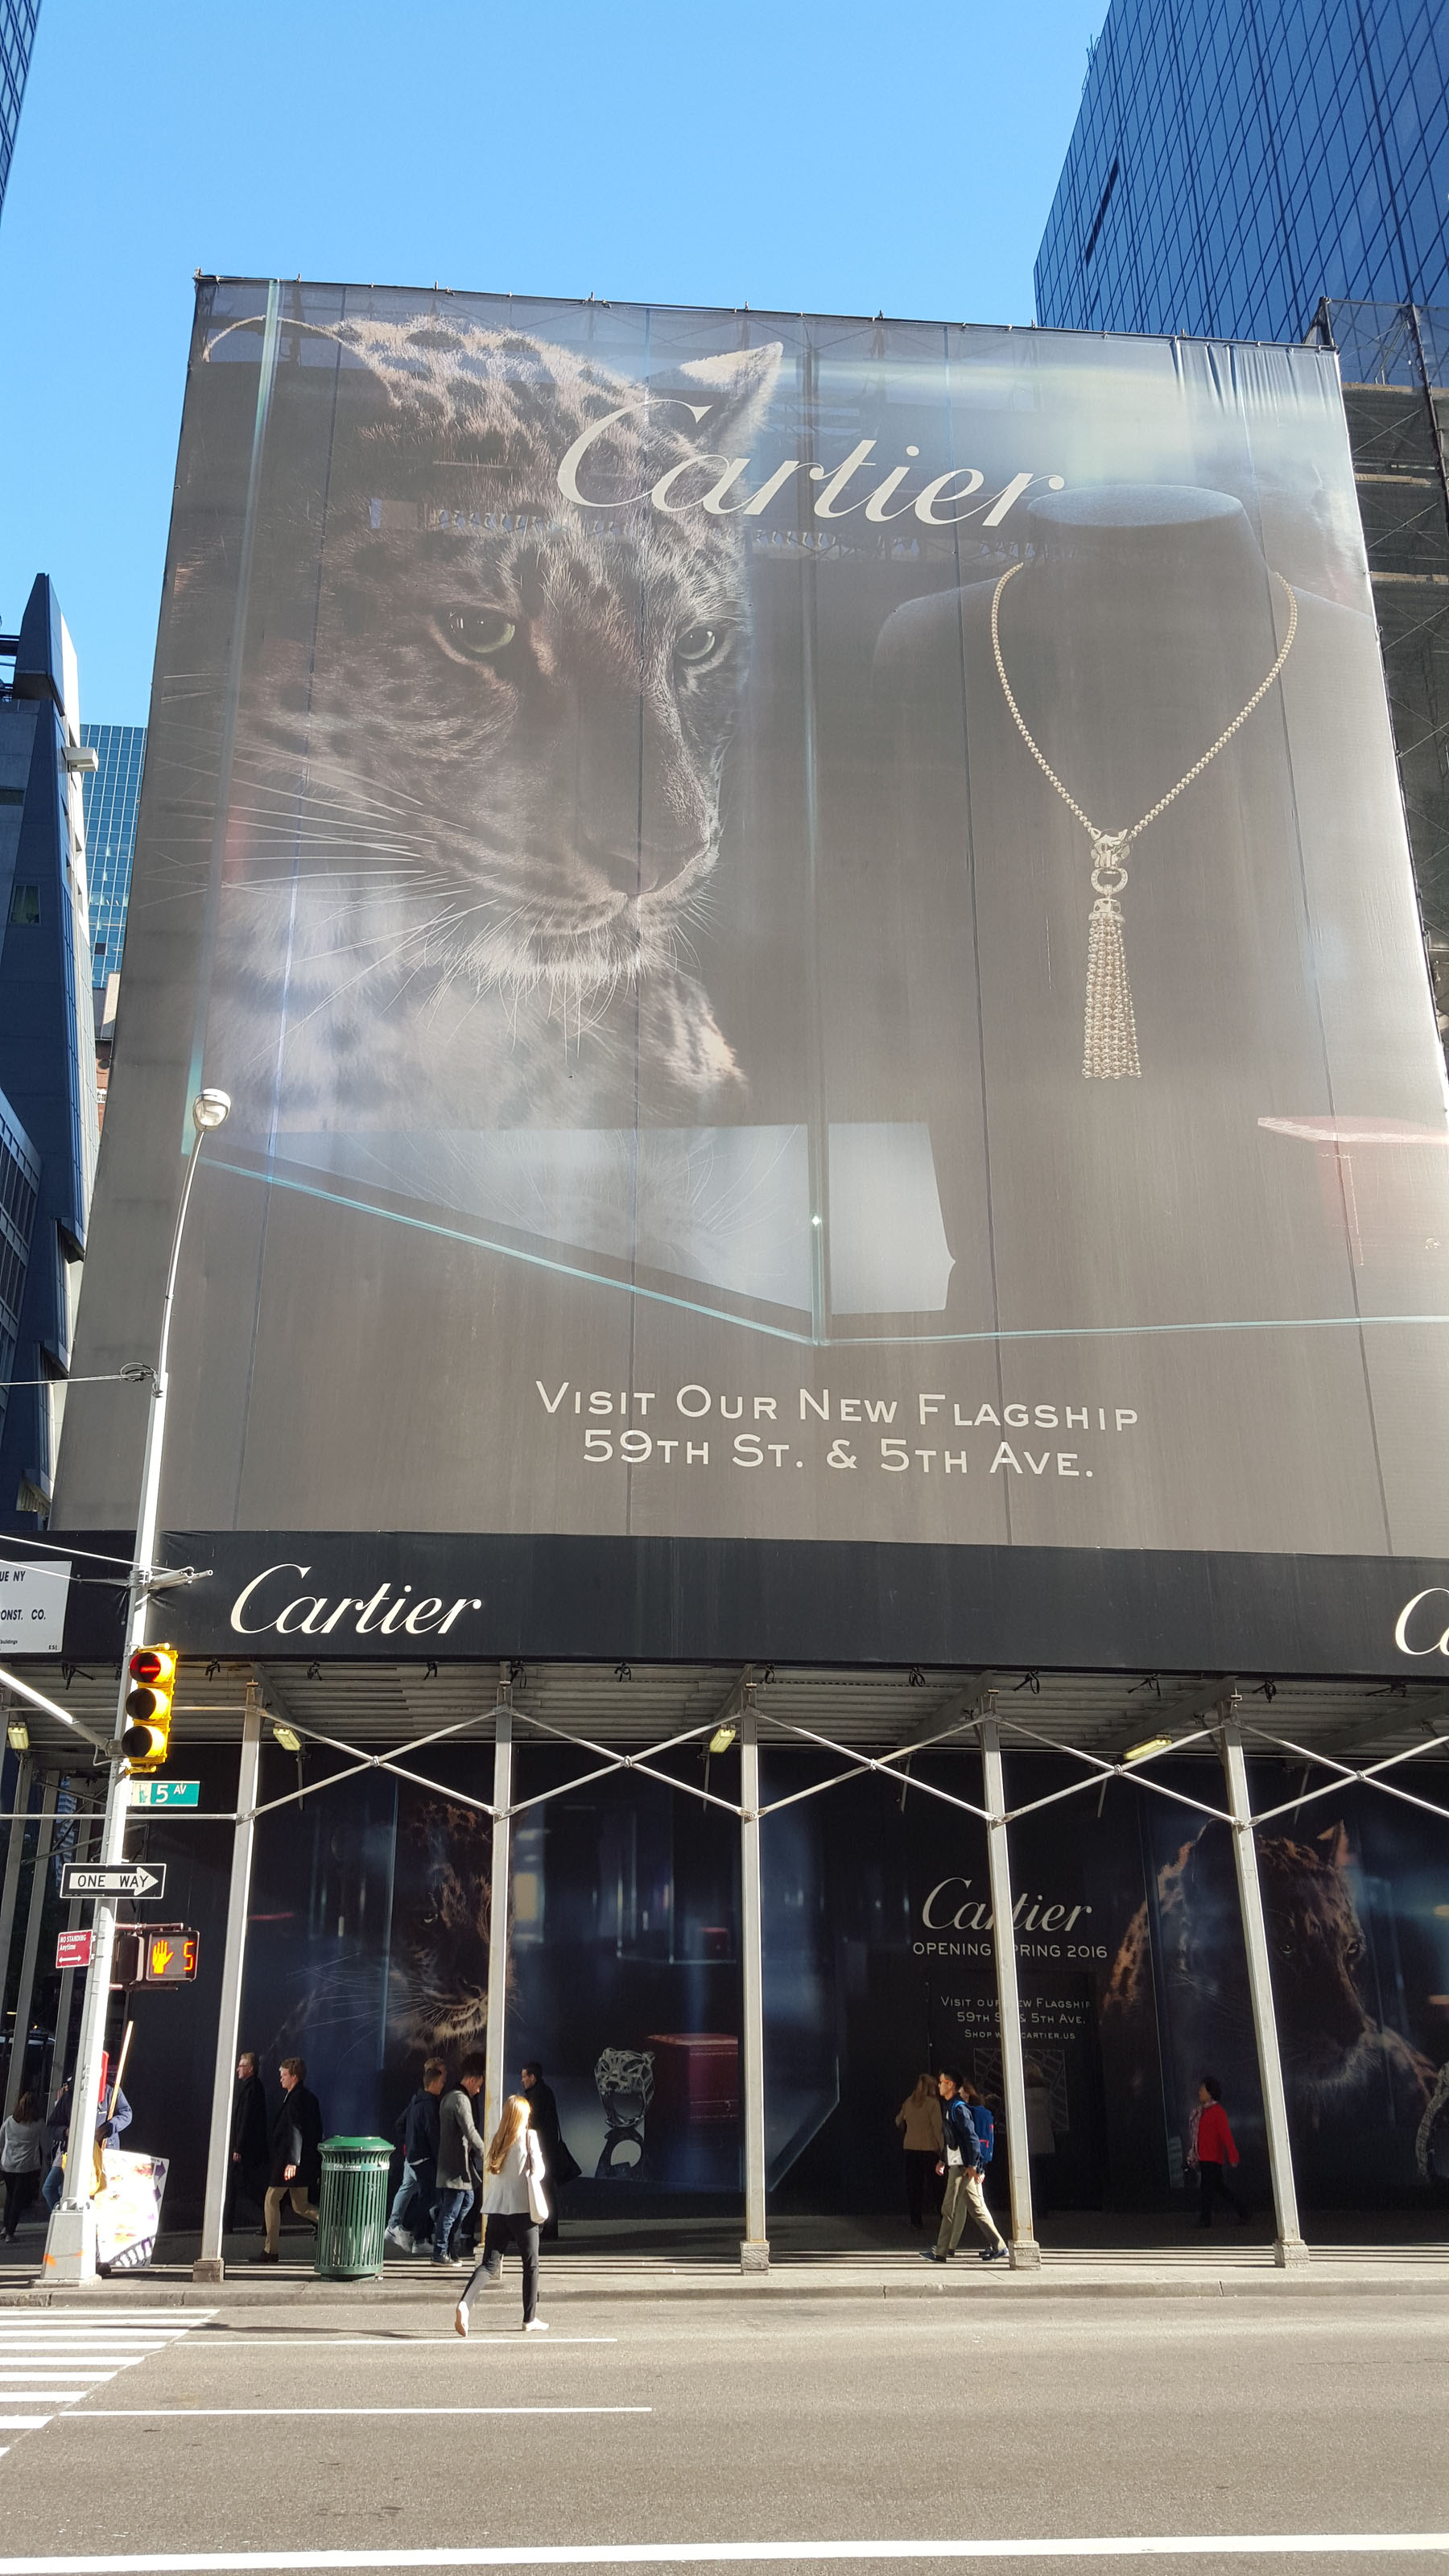 651 Fifth Avenue Cartier's